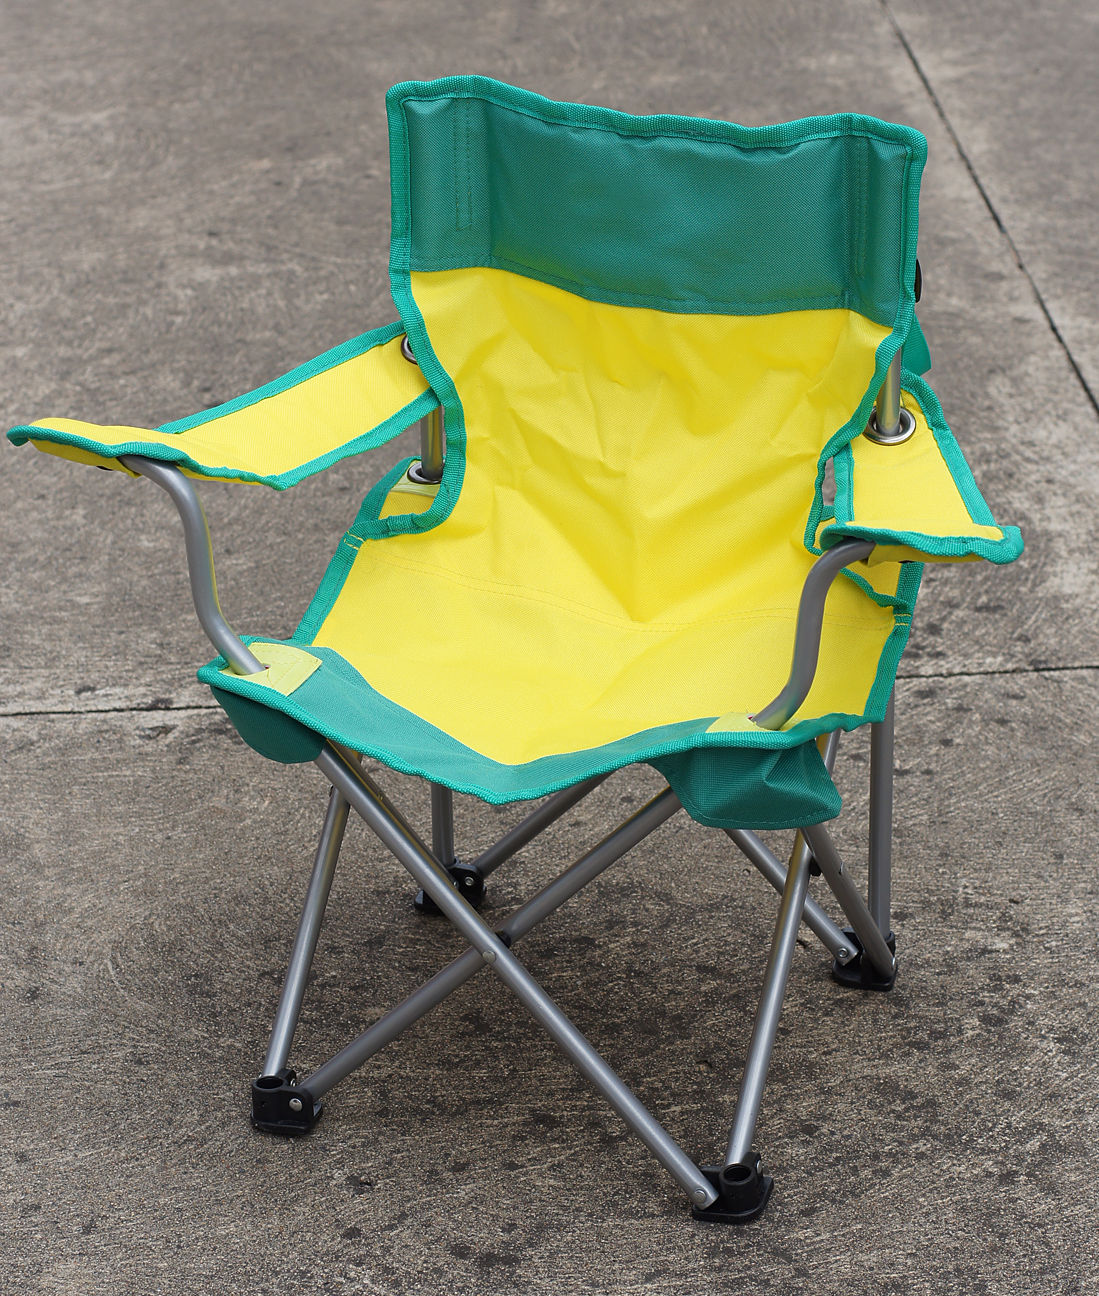 Kids Folding Chair With Arms Foldable Light Outdoor